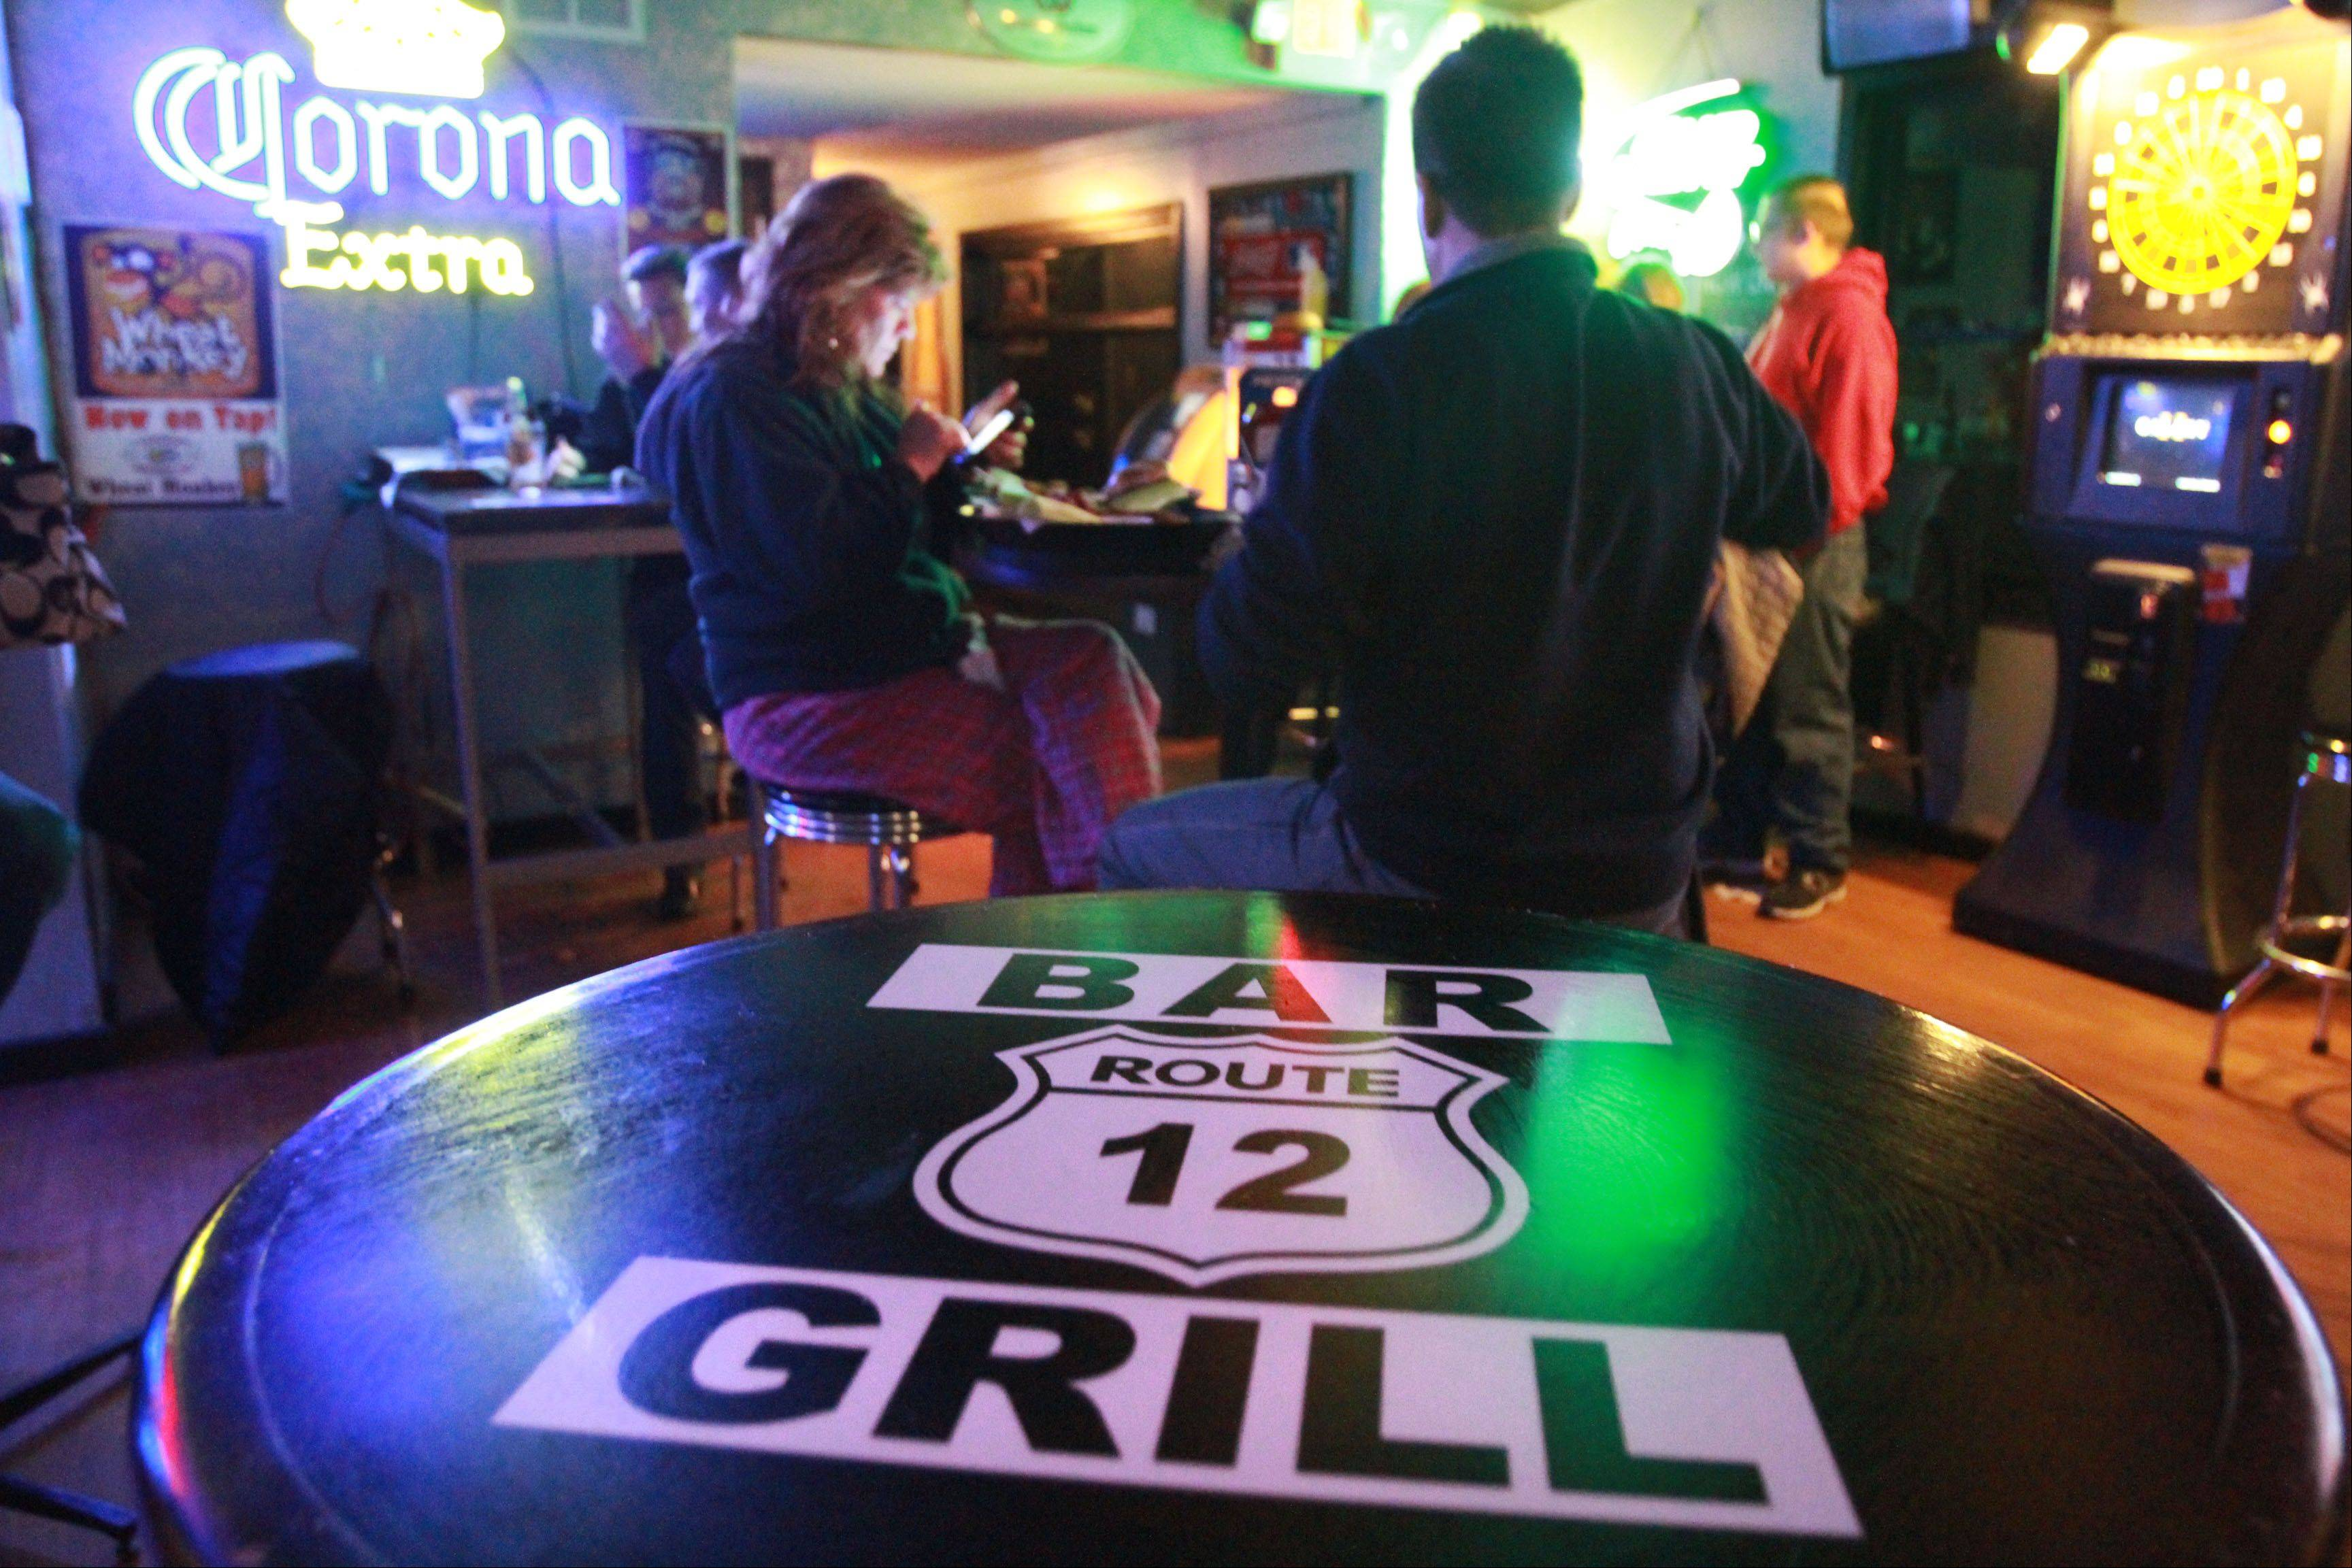 Route 12 Bar & Grill in Fox Lake attracts patrons who want to relax, watch a game, and savor a beer and a burger.